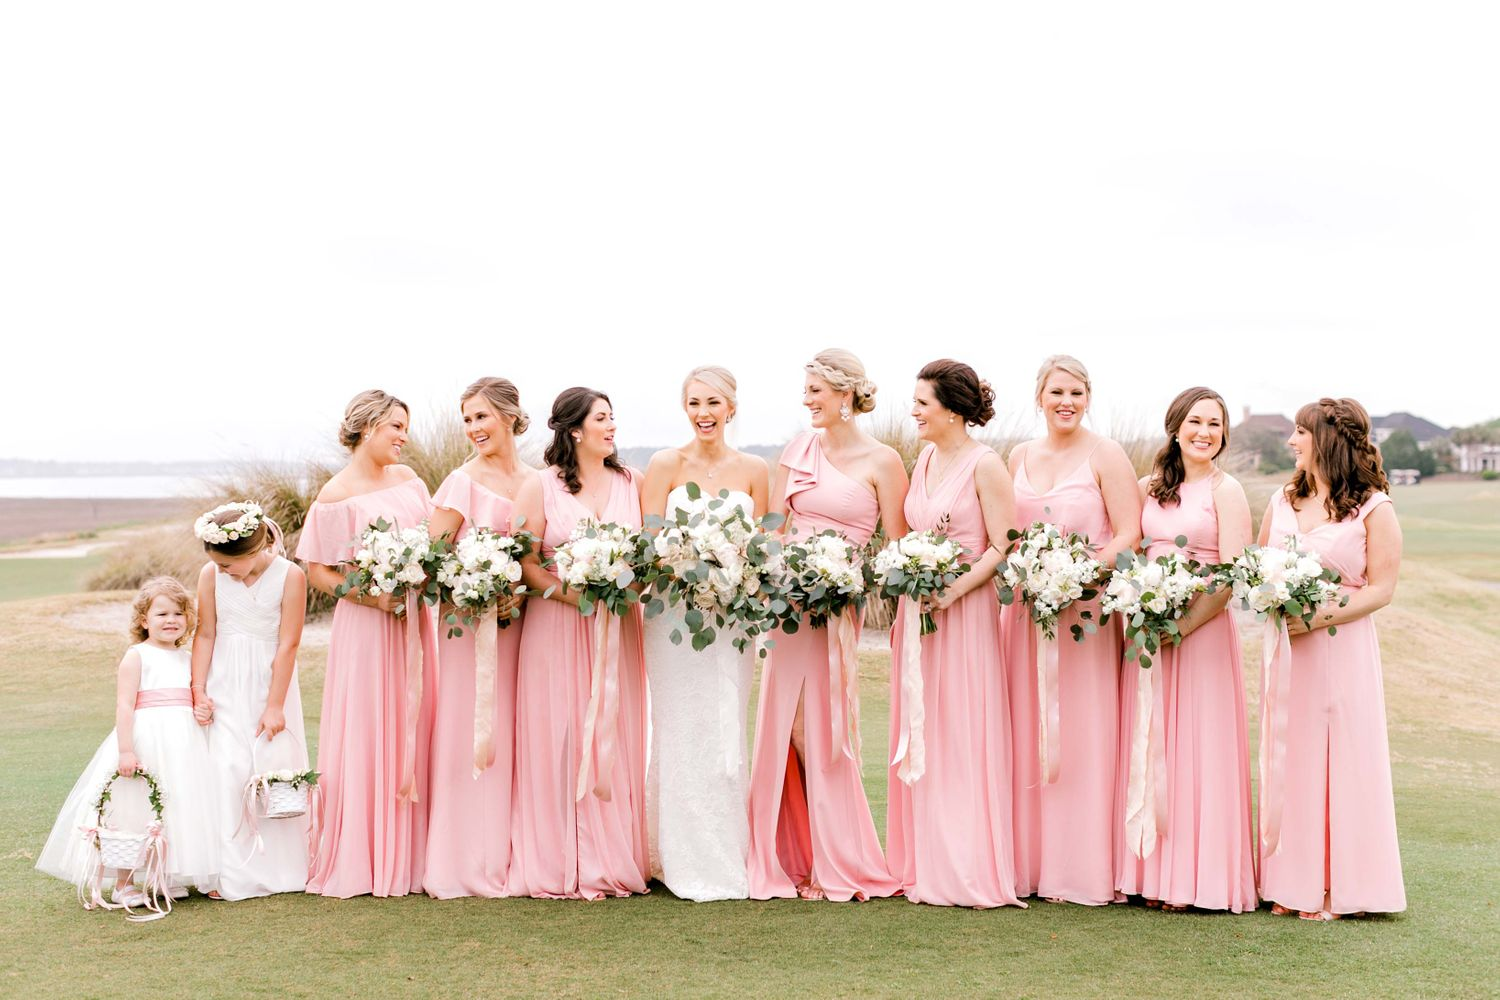 colletonriverwedding-164.jpg